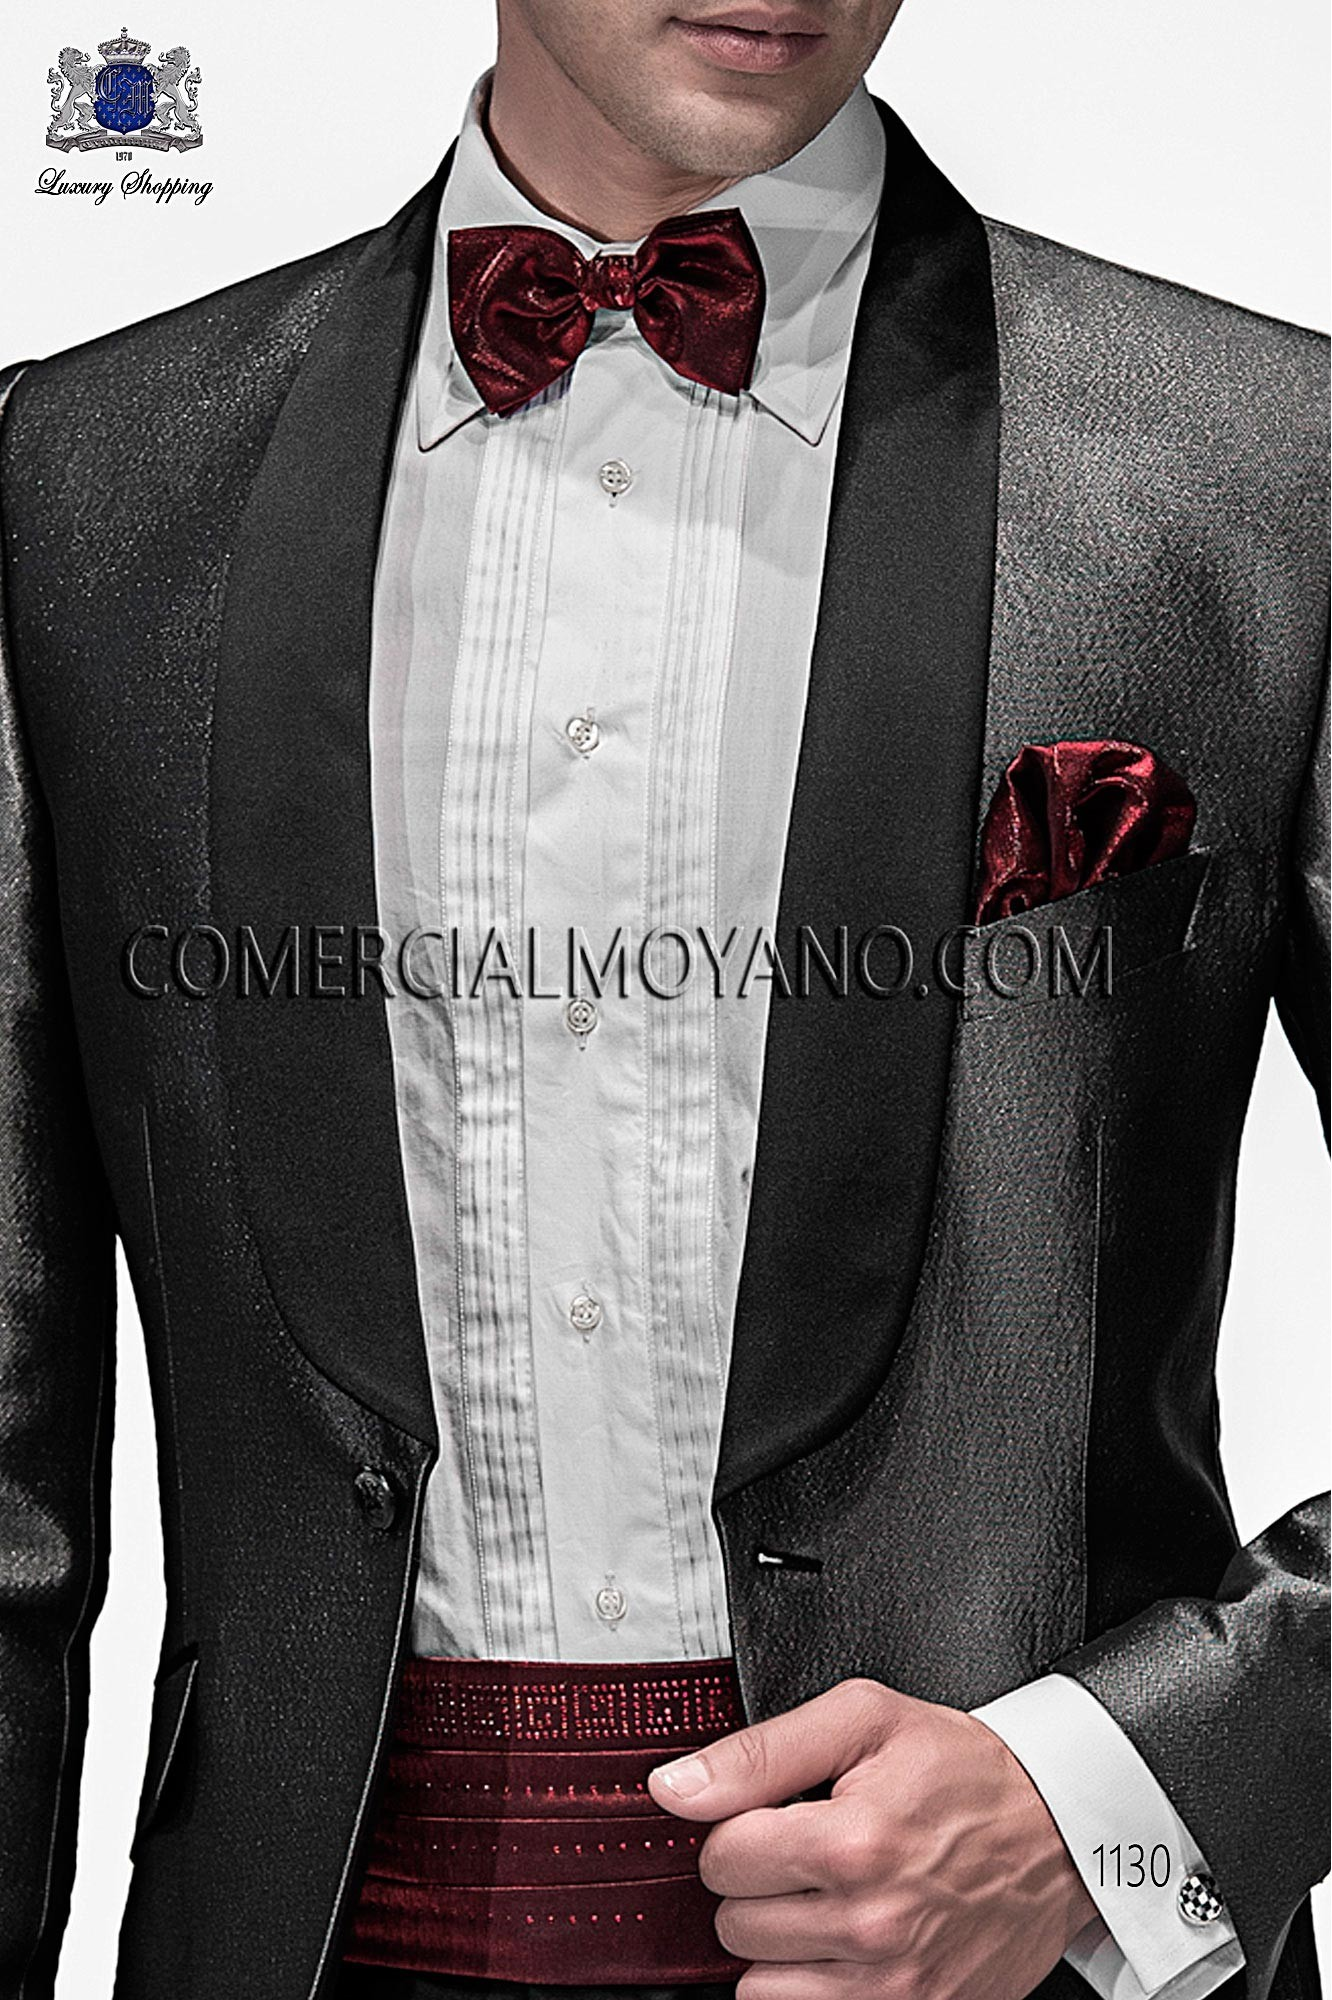 Italian emotion black/ silver men wedding suit, model: 1130 Ottavio Nuccio Gala Emotion Collection